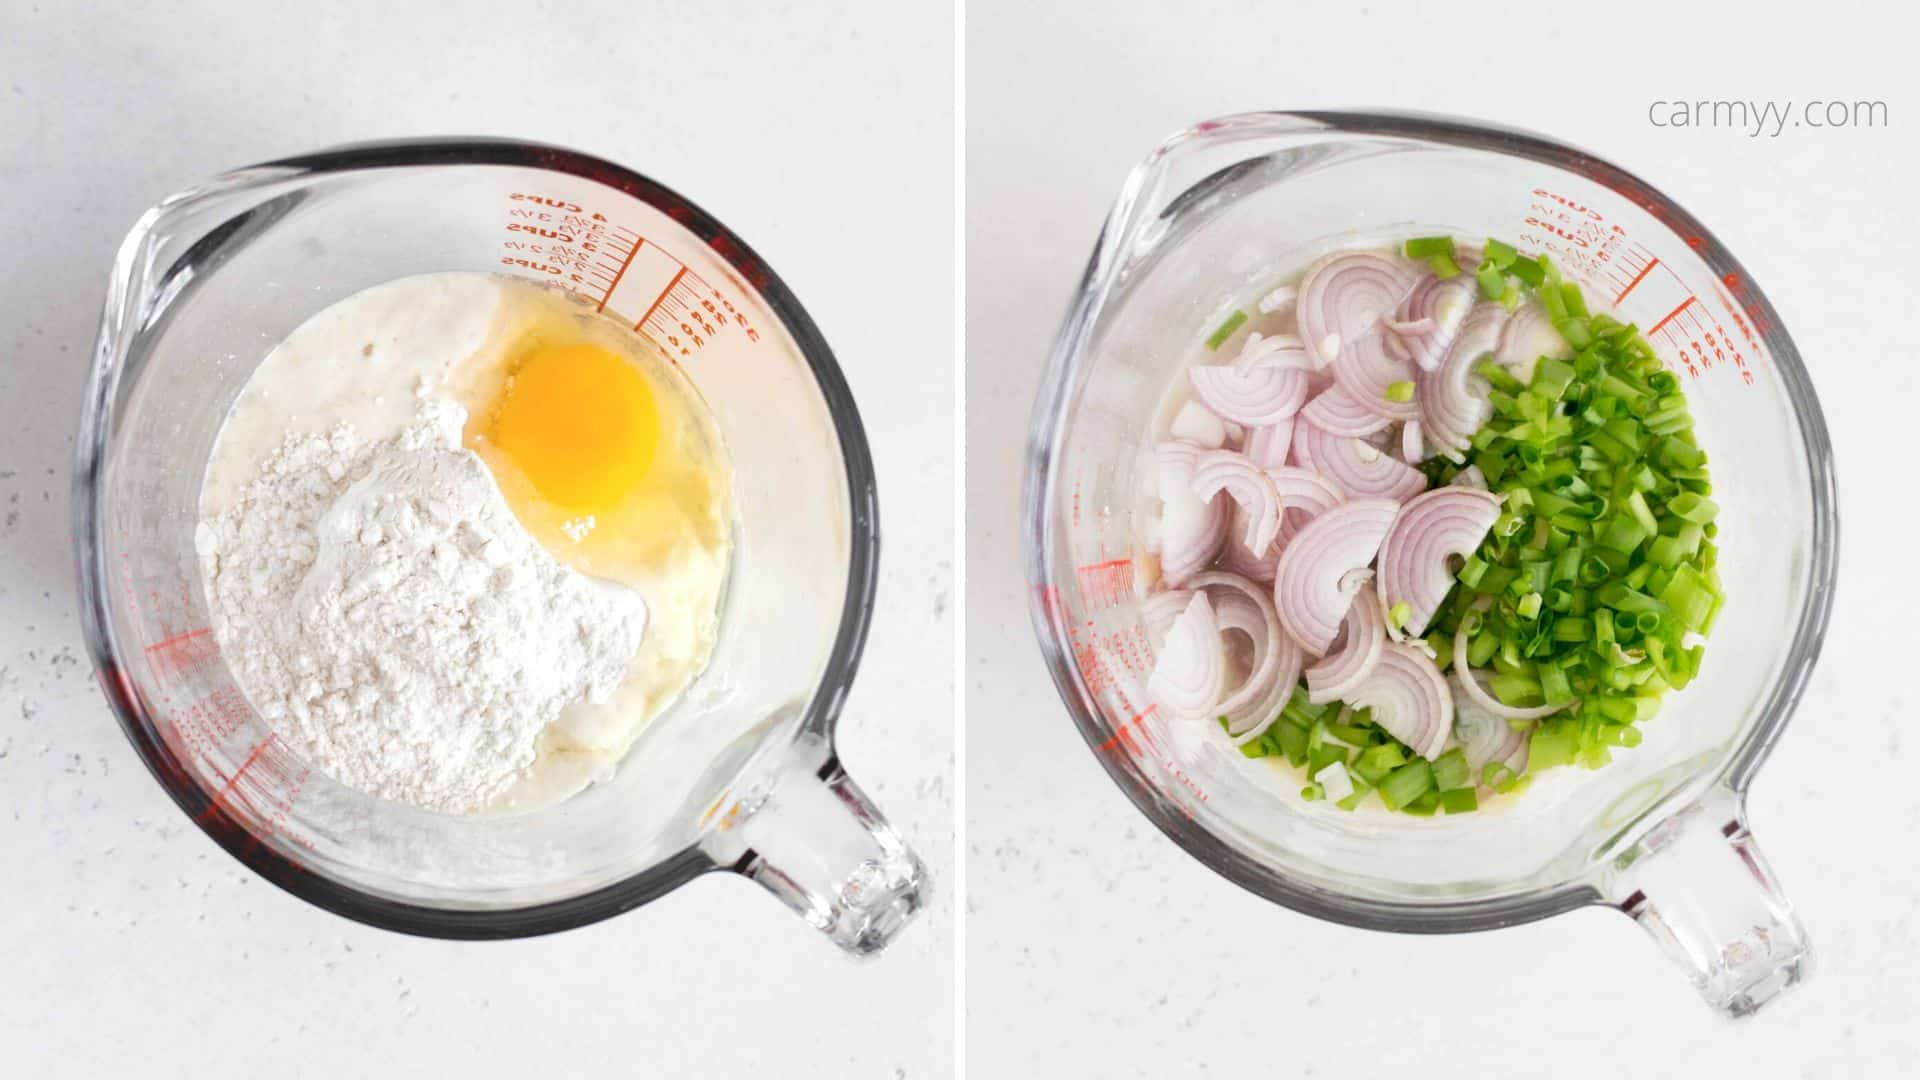 two measuring cups: one containing sourdough discard, flour, and egg, the other with green onions and shallots